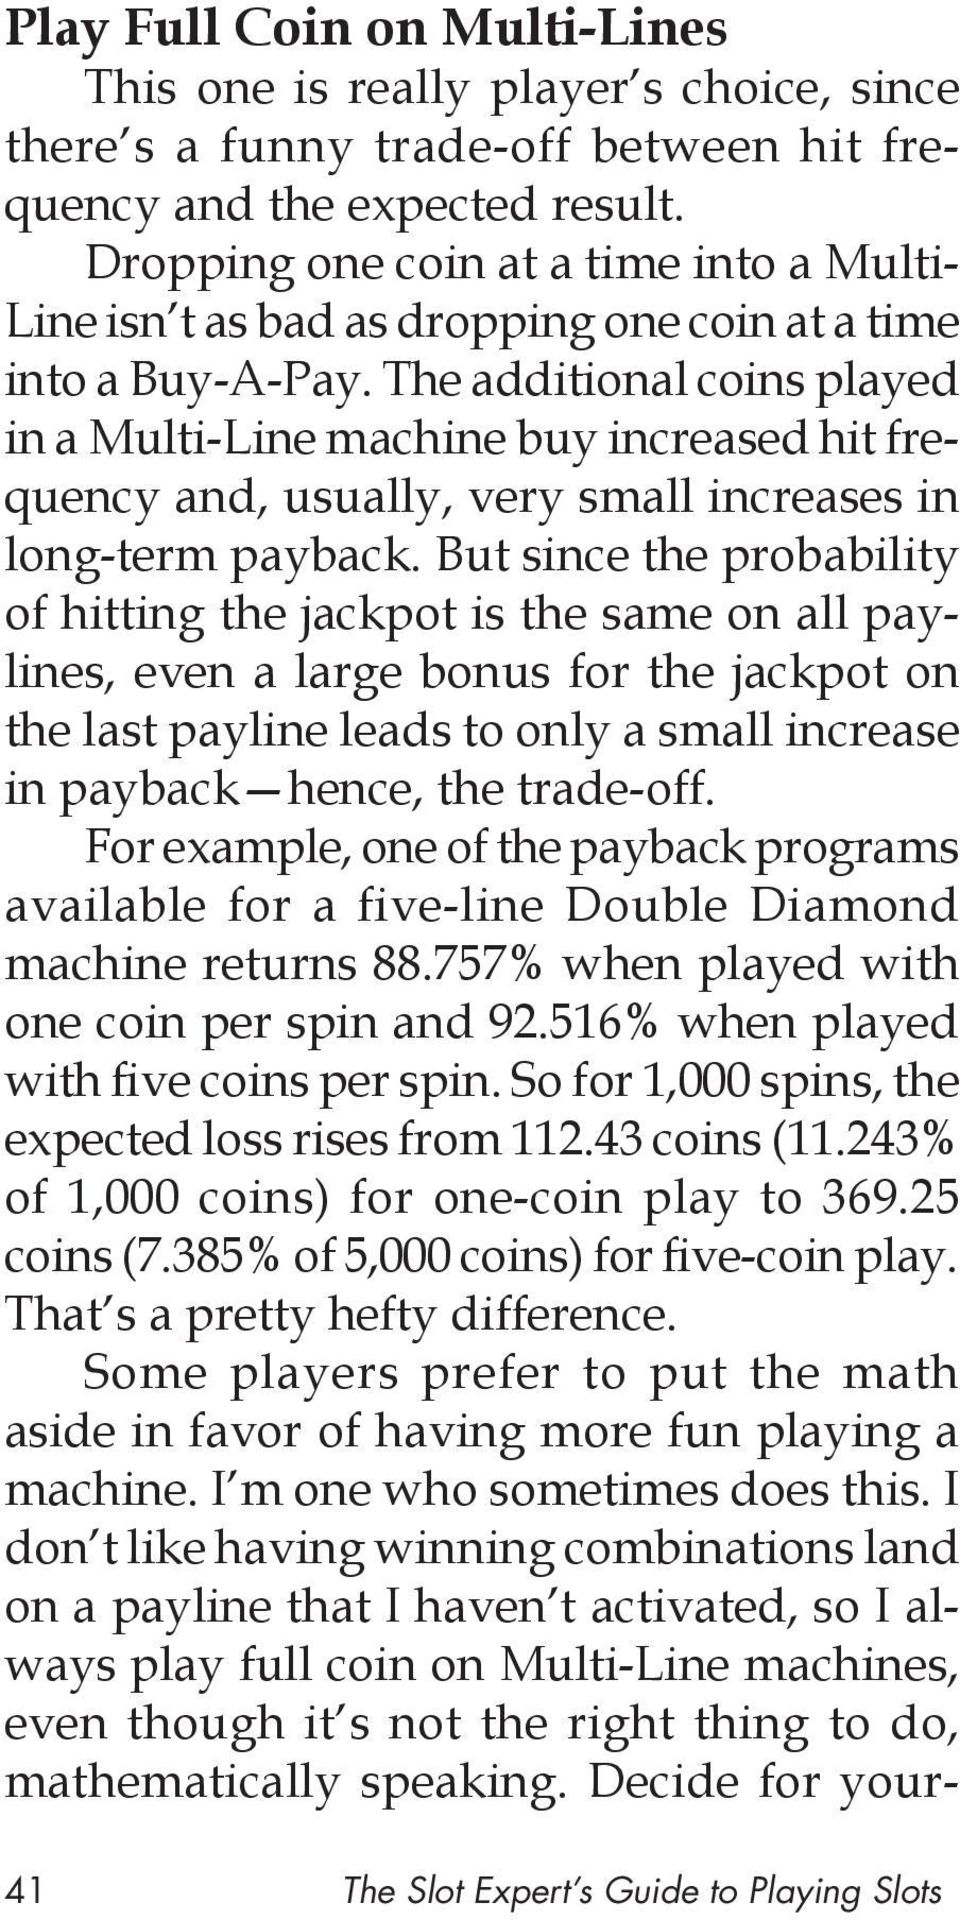 The additional coins played in a Multi-Line machine buy increased hit frequency and, usually, very small increases in long-term payback.